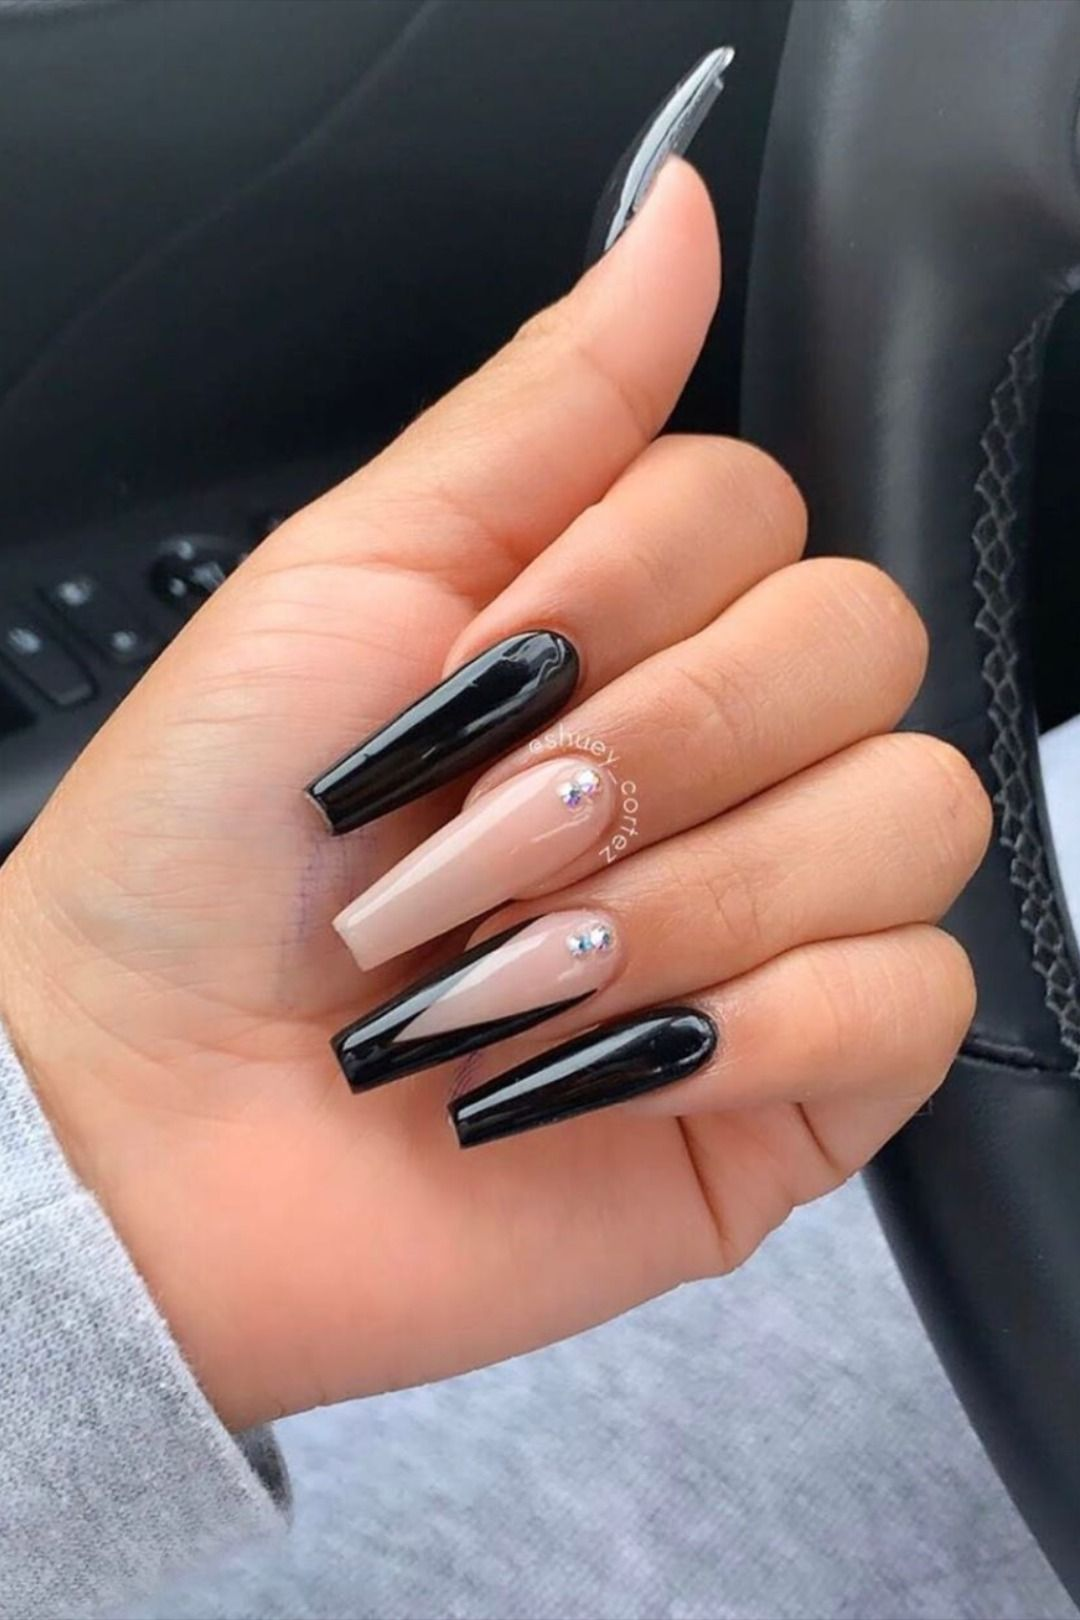 The Most Beautiful Black Winter Nails Ideas With Images Long Acrylic Nails Coffin Black Acrylic Nails Coffin Nails Designs